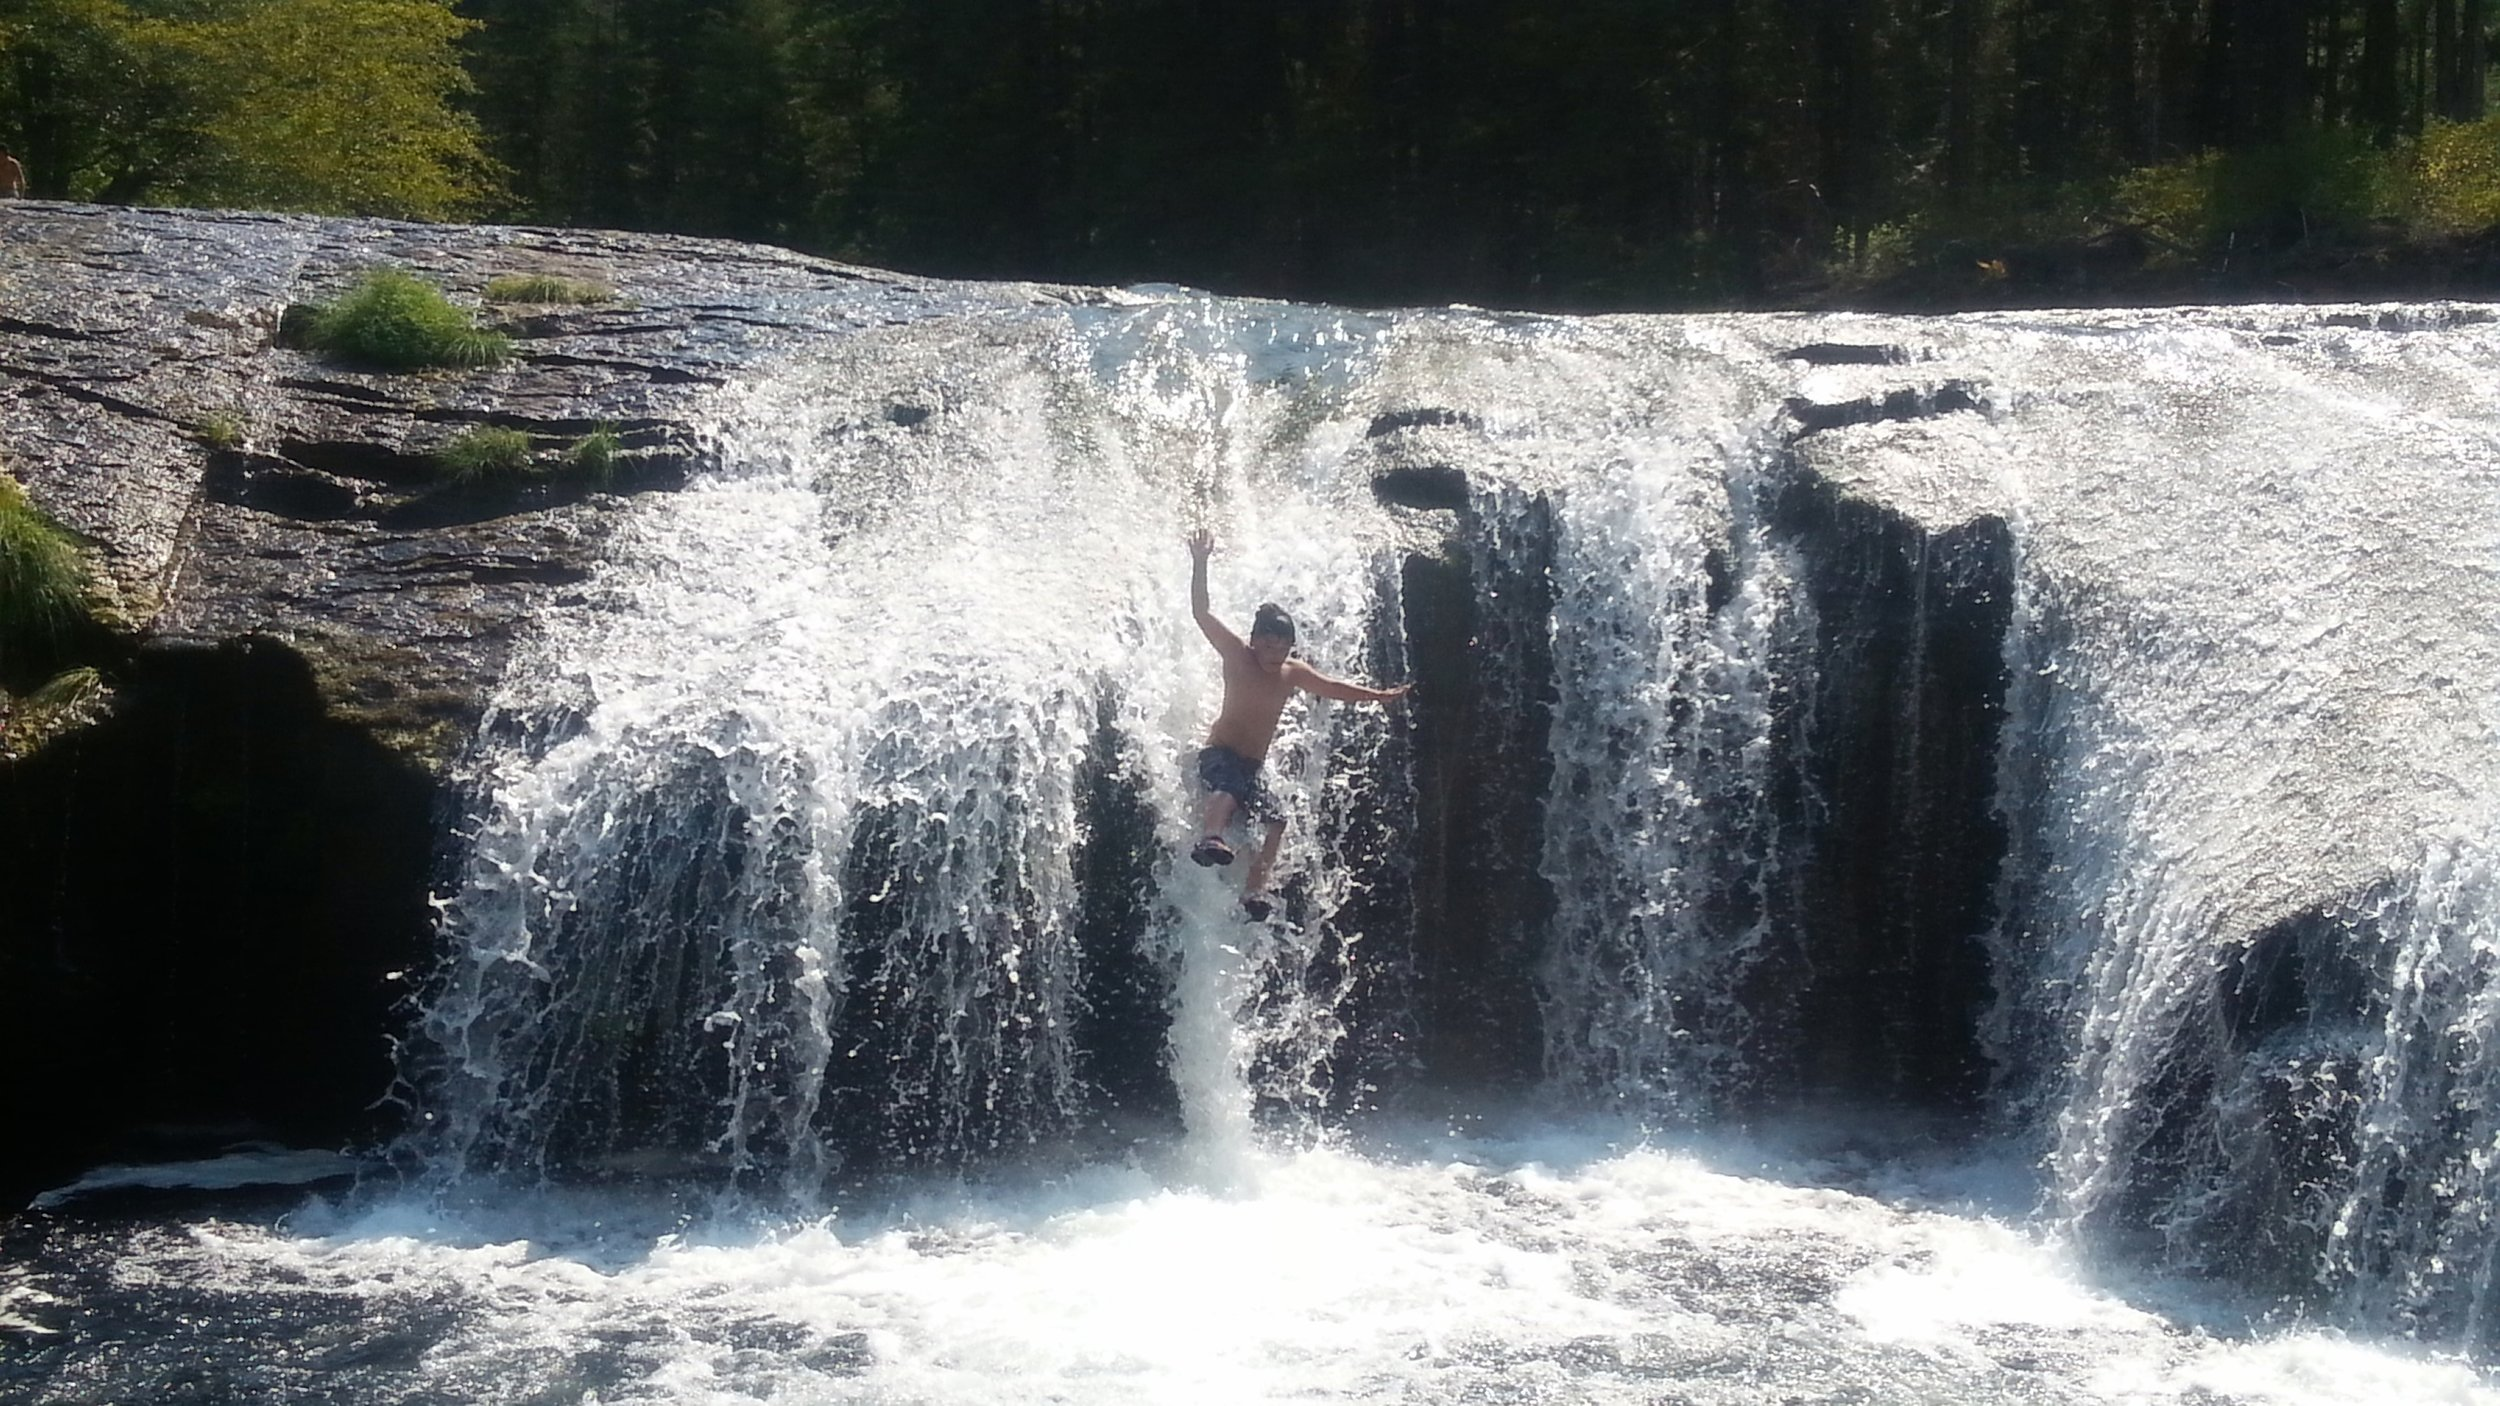 SOUTH UMPQUA FALLS NATURAL WATER SLIDES - What to do in Southern Oregon - Fun with Kids - Outdoor Adventures